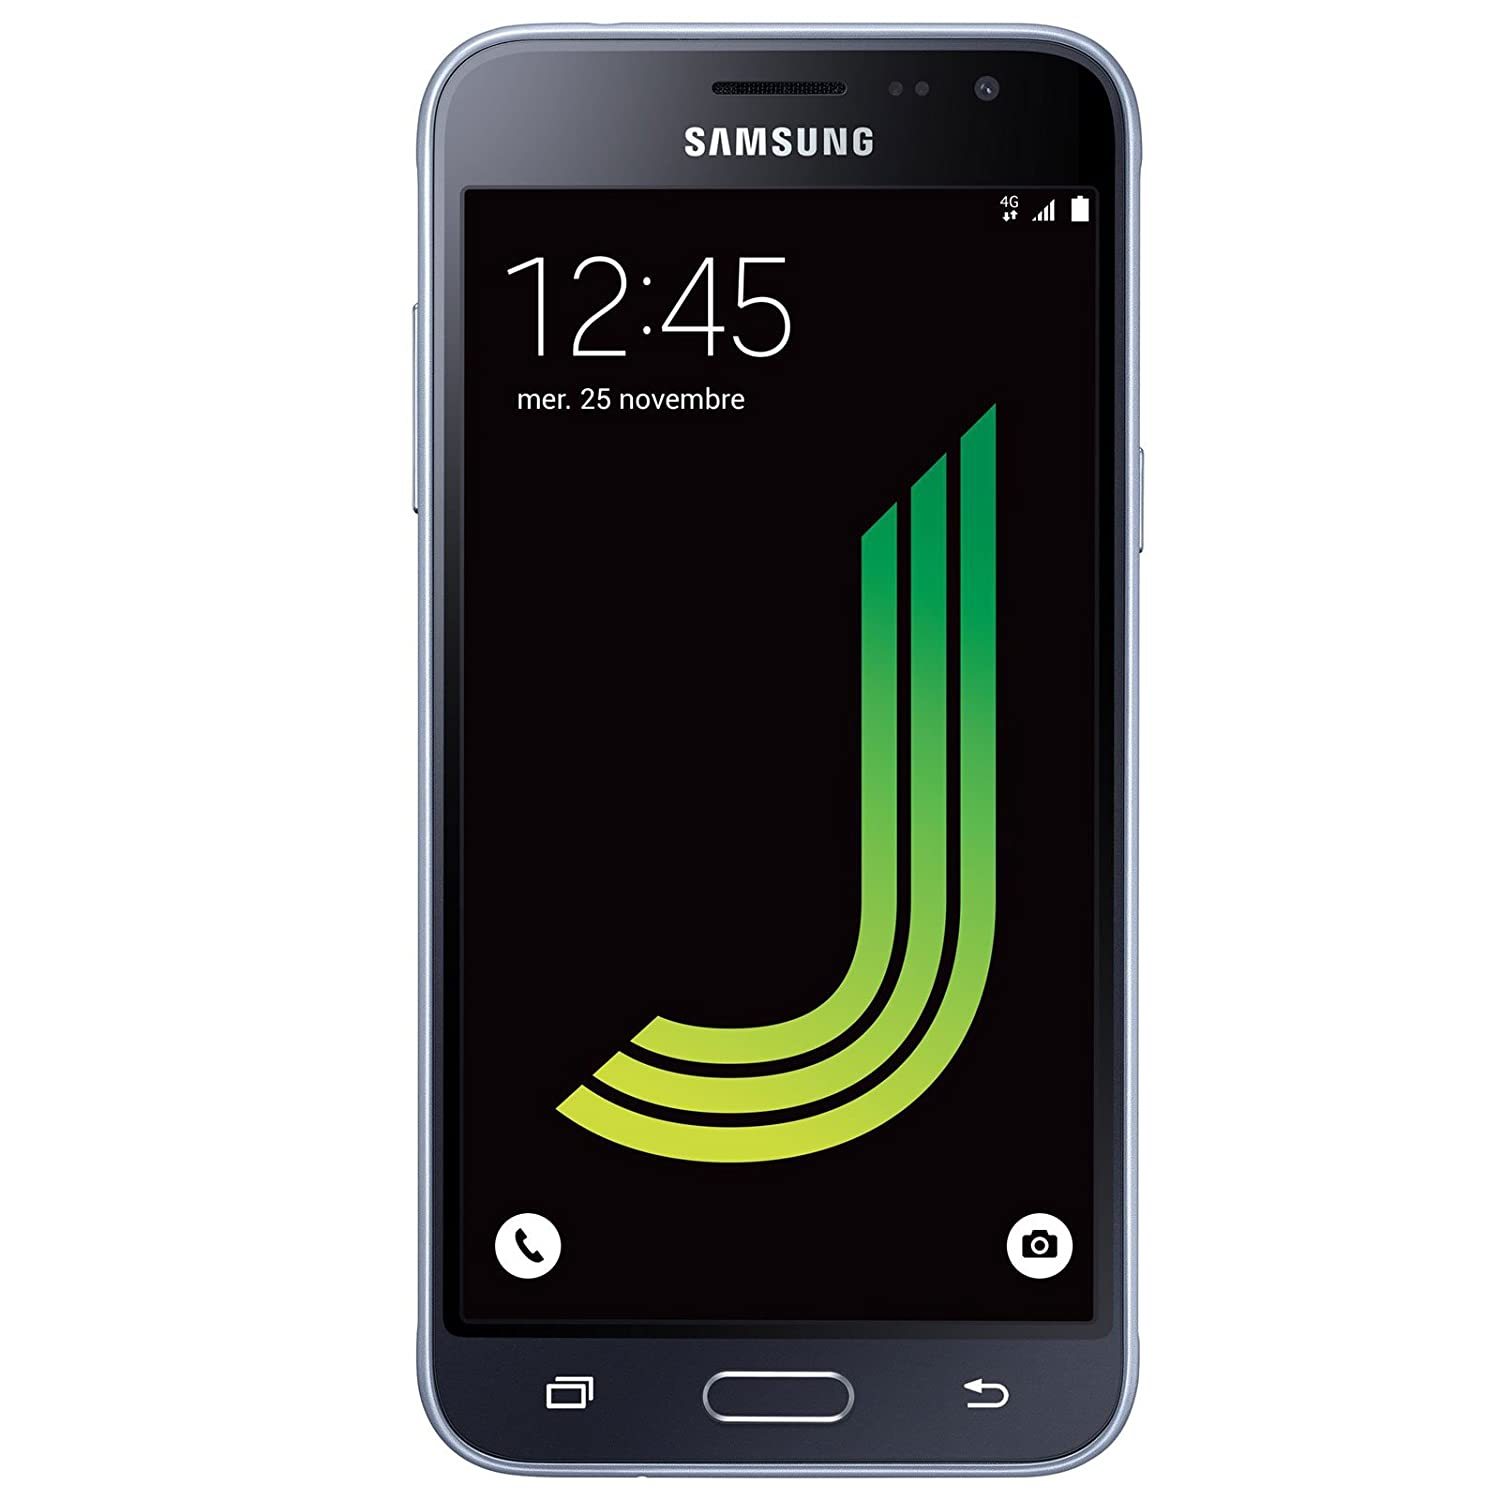 "Samsung Galaxy J3 SM-J320F Dual SIM 4G 8GB Black - smartphones (12.7 cm (5""), 1.5 GB, 8 GB, 8 MP, Android, Black)"